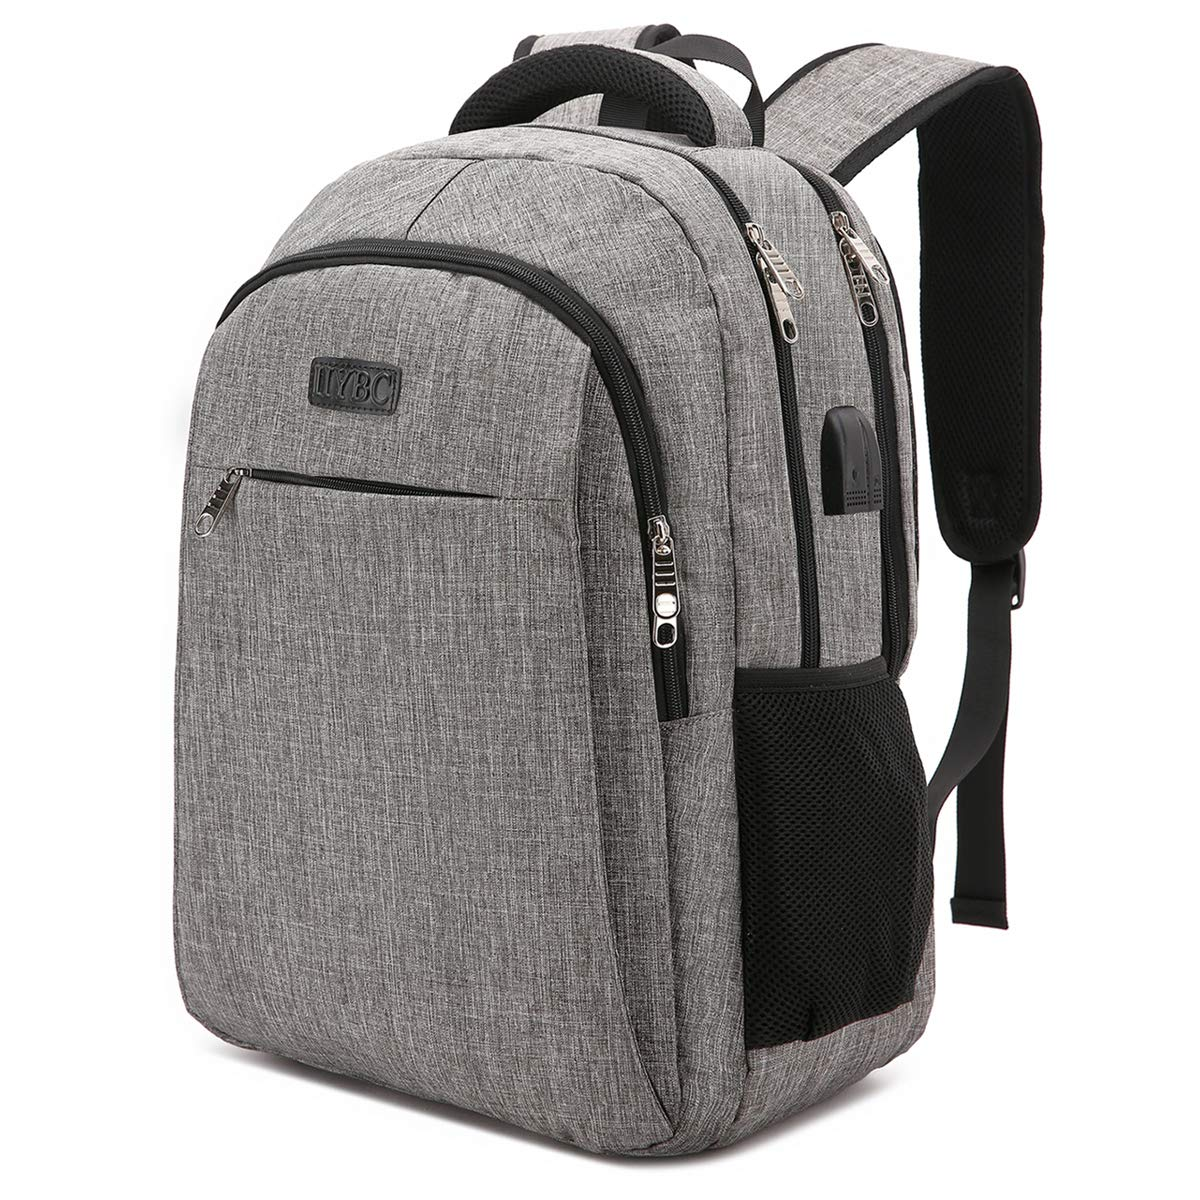 Travel Laptop Backpack, IIYBC Business Anti Theft Laptop Backpack with USB Charging Port & Headphone Interface, Waterproof College School Computer Bag for Women & Men Fits 15.6 Inch Notebook (Gray)